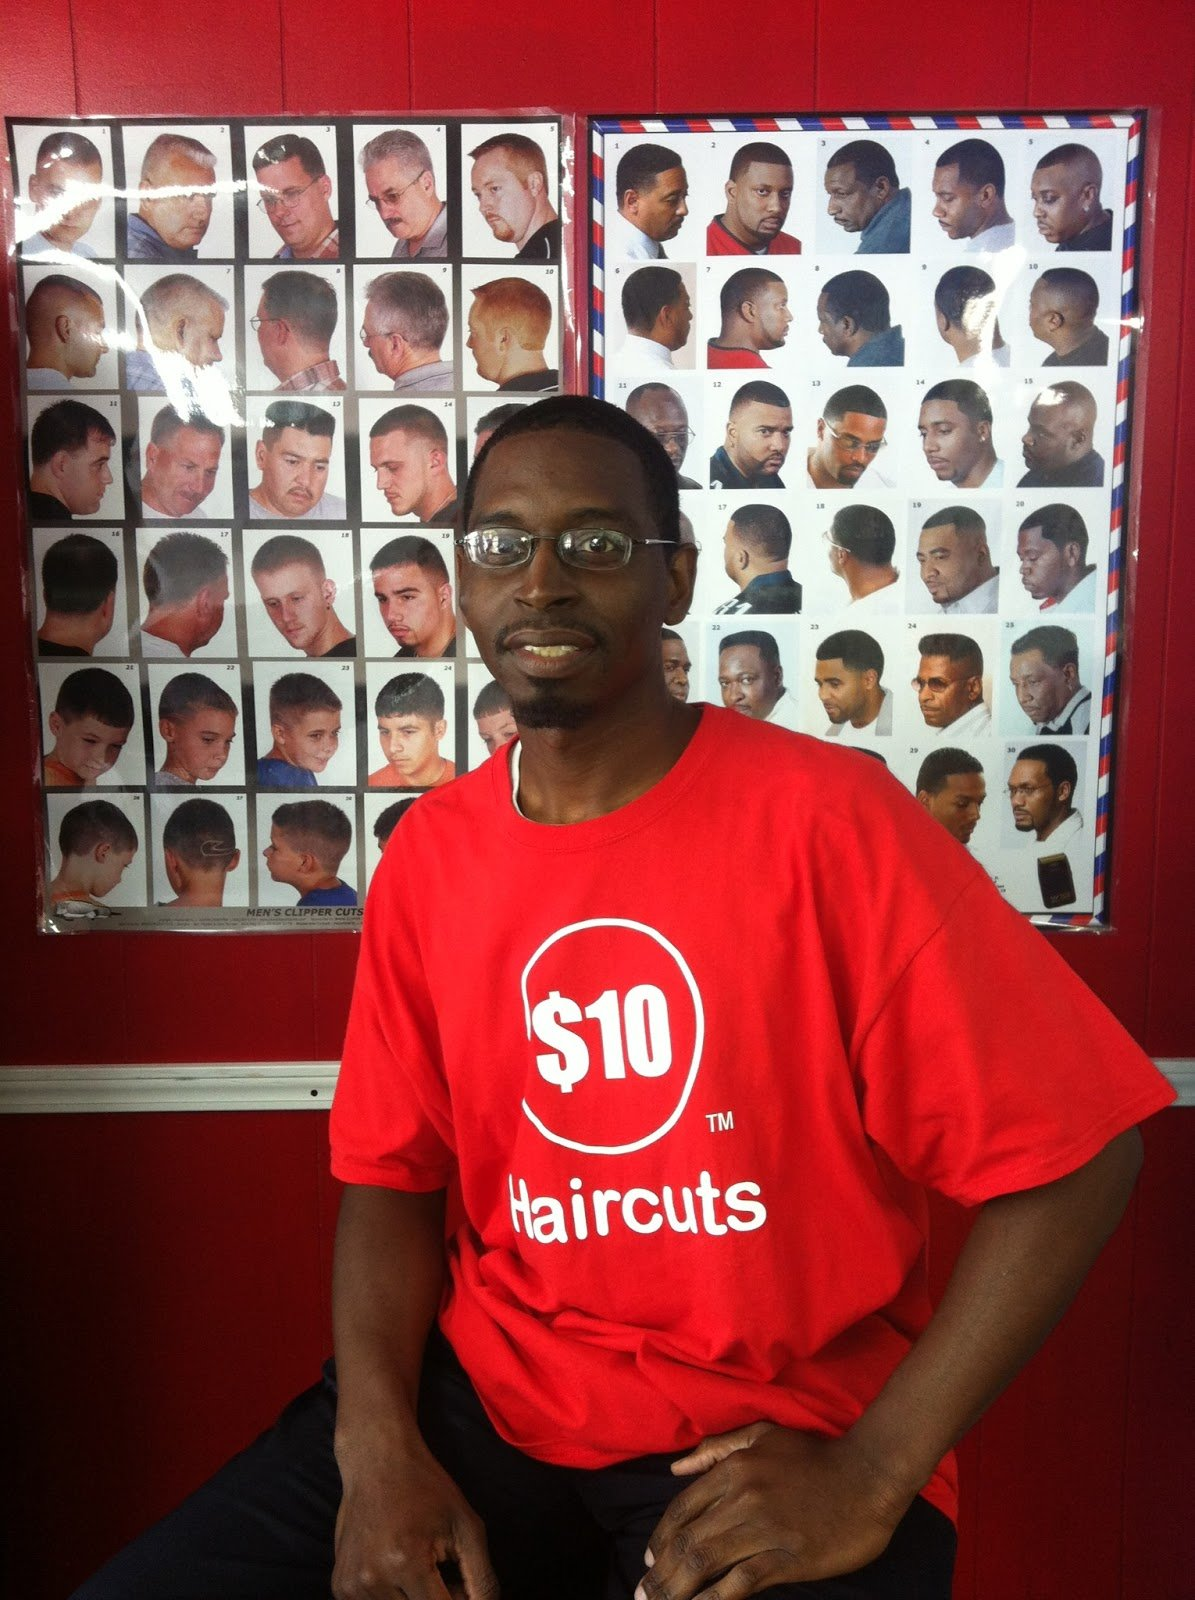 New 10 Dollar Haircuts 76011 June 2013 Ideas With Pictures